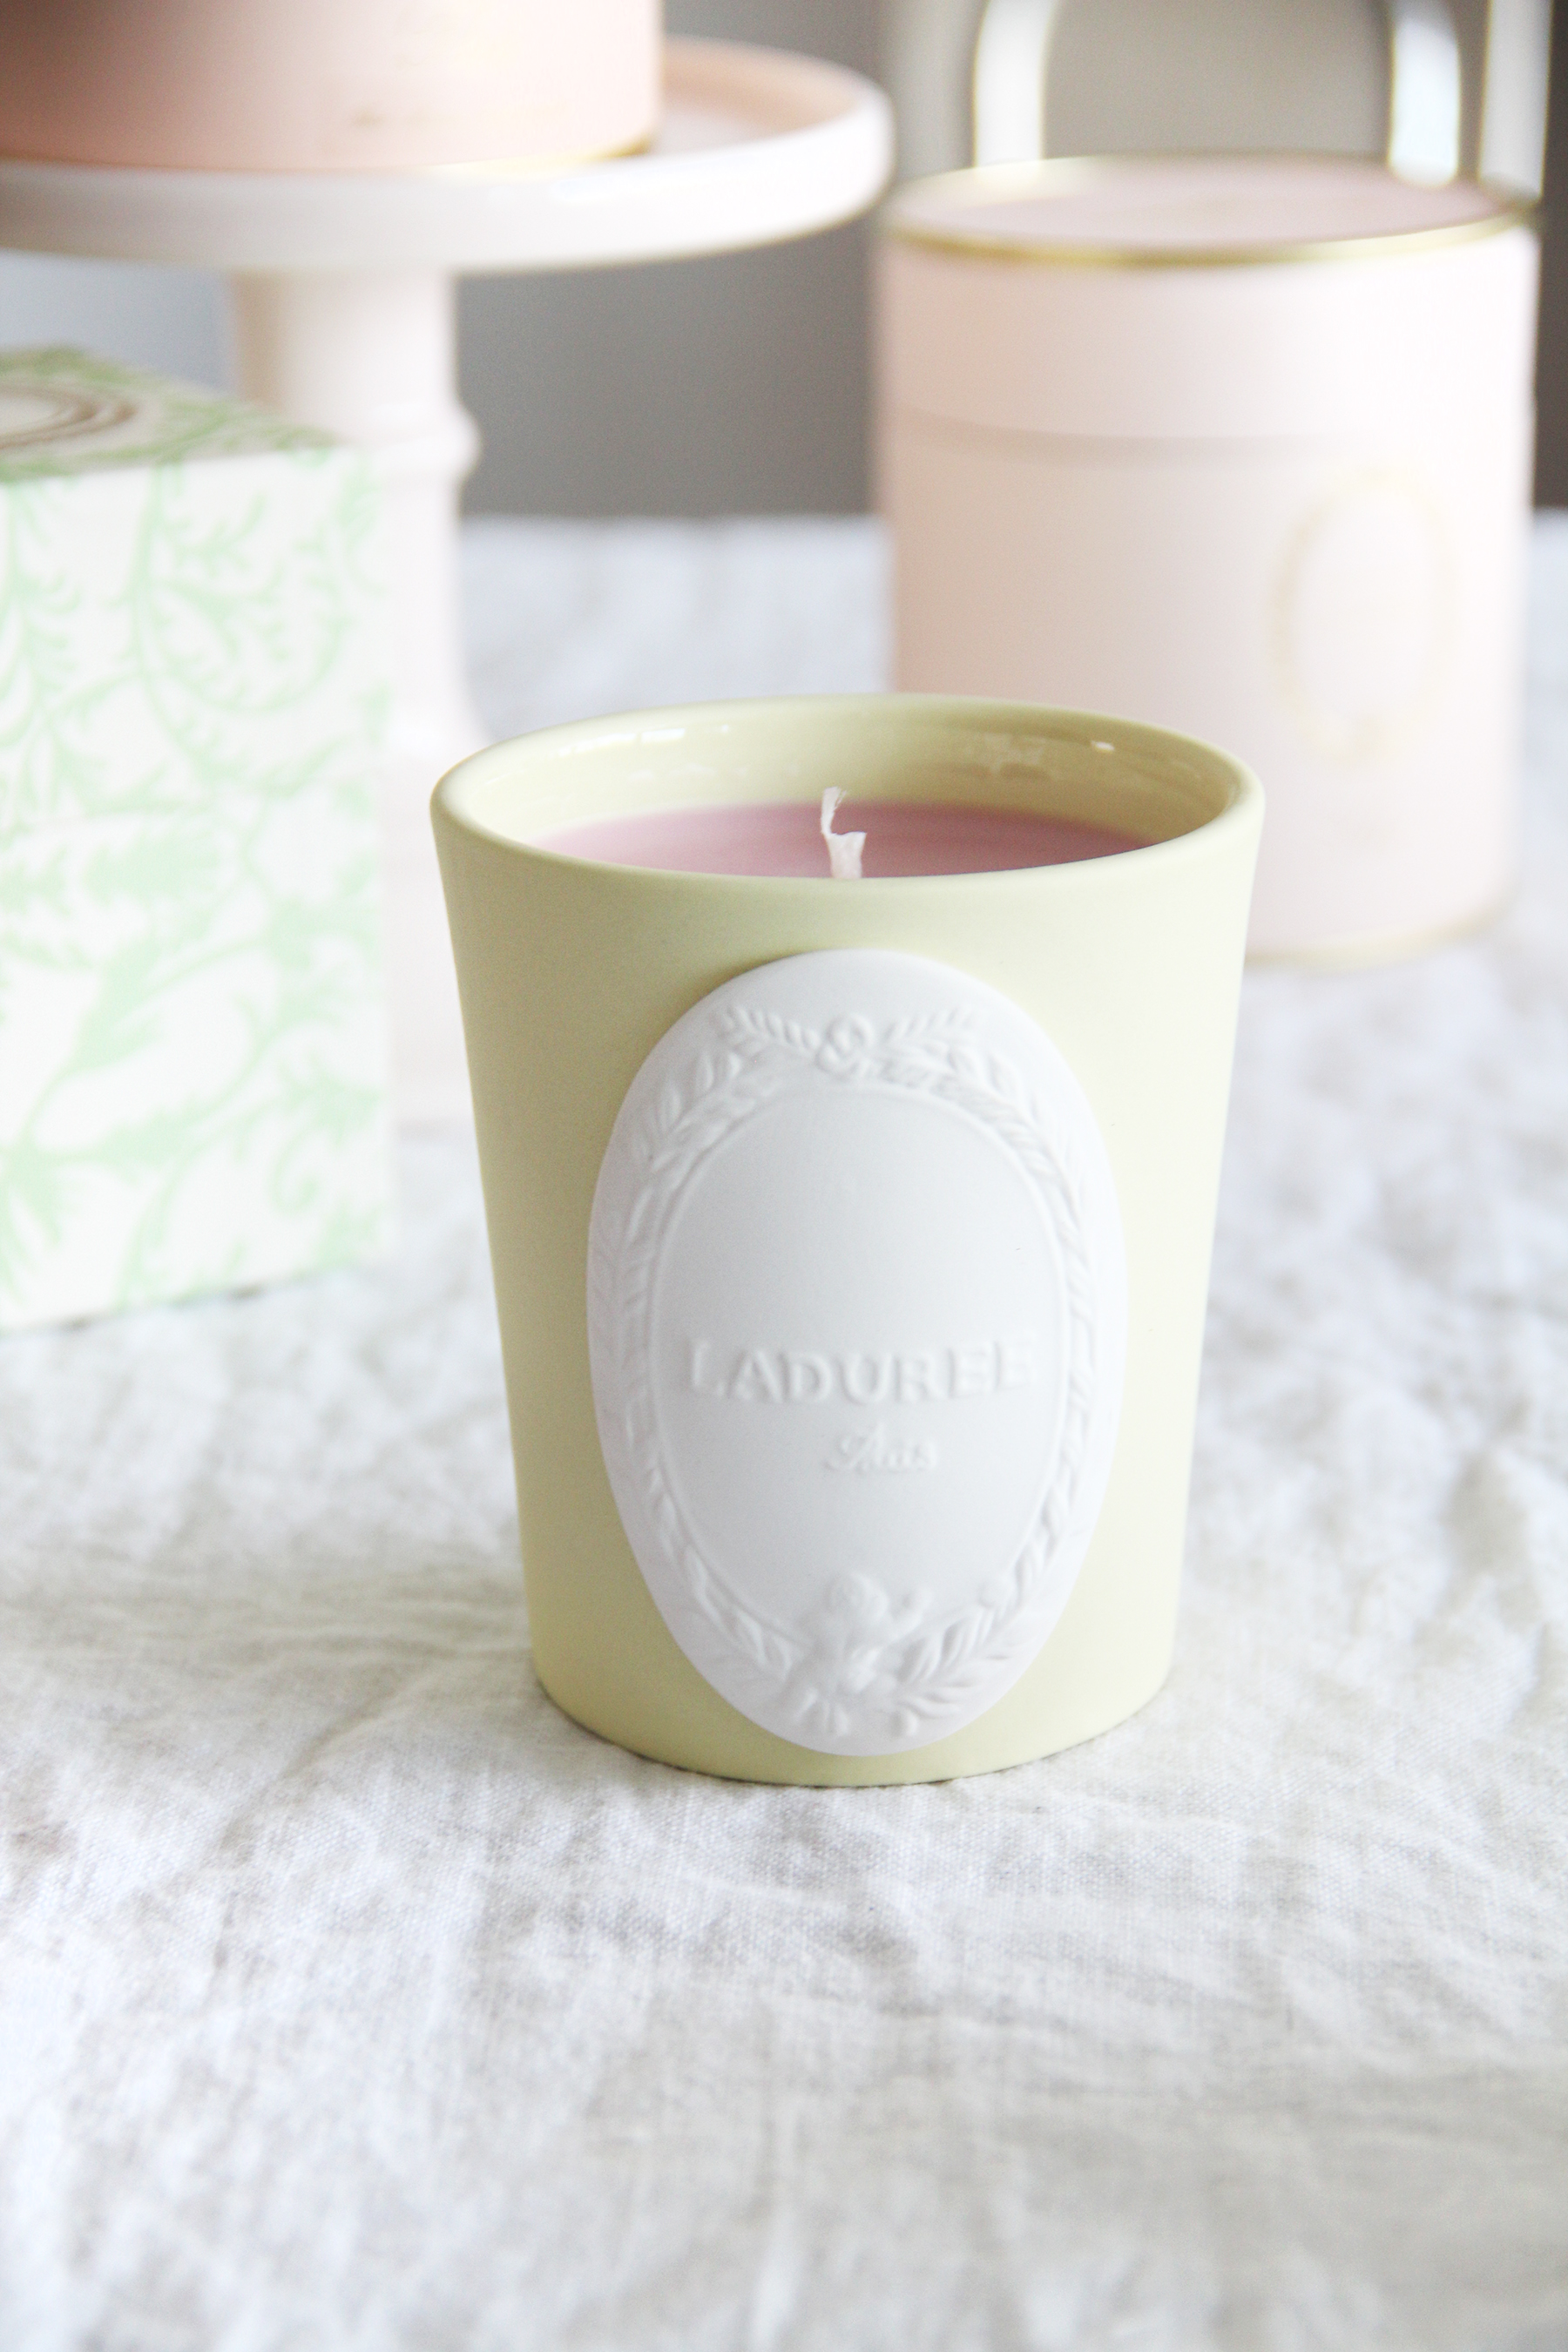 Laduree Candle Giveaway